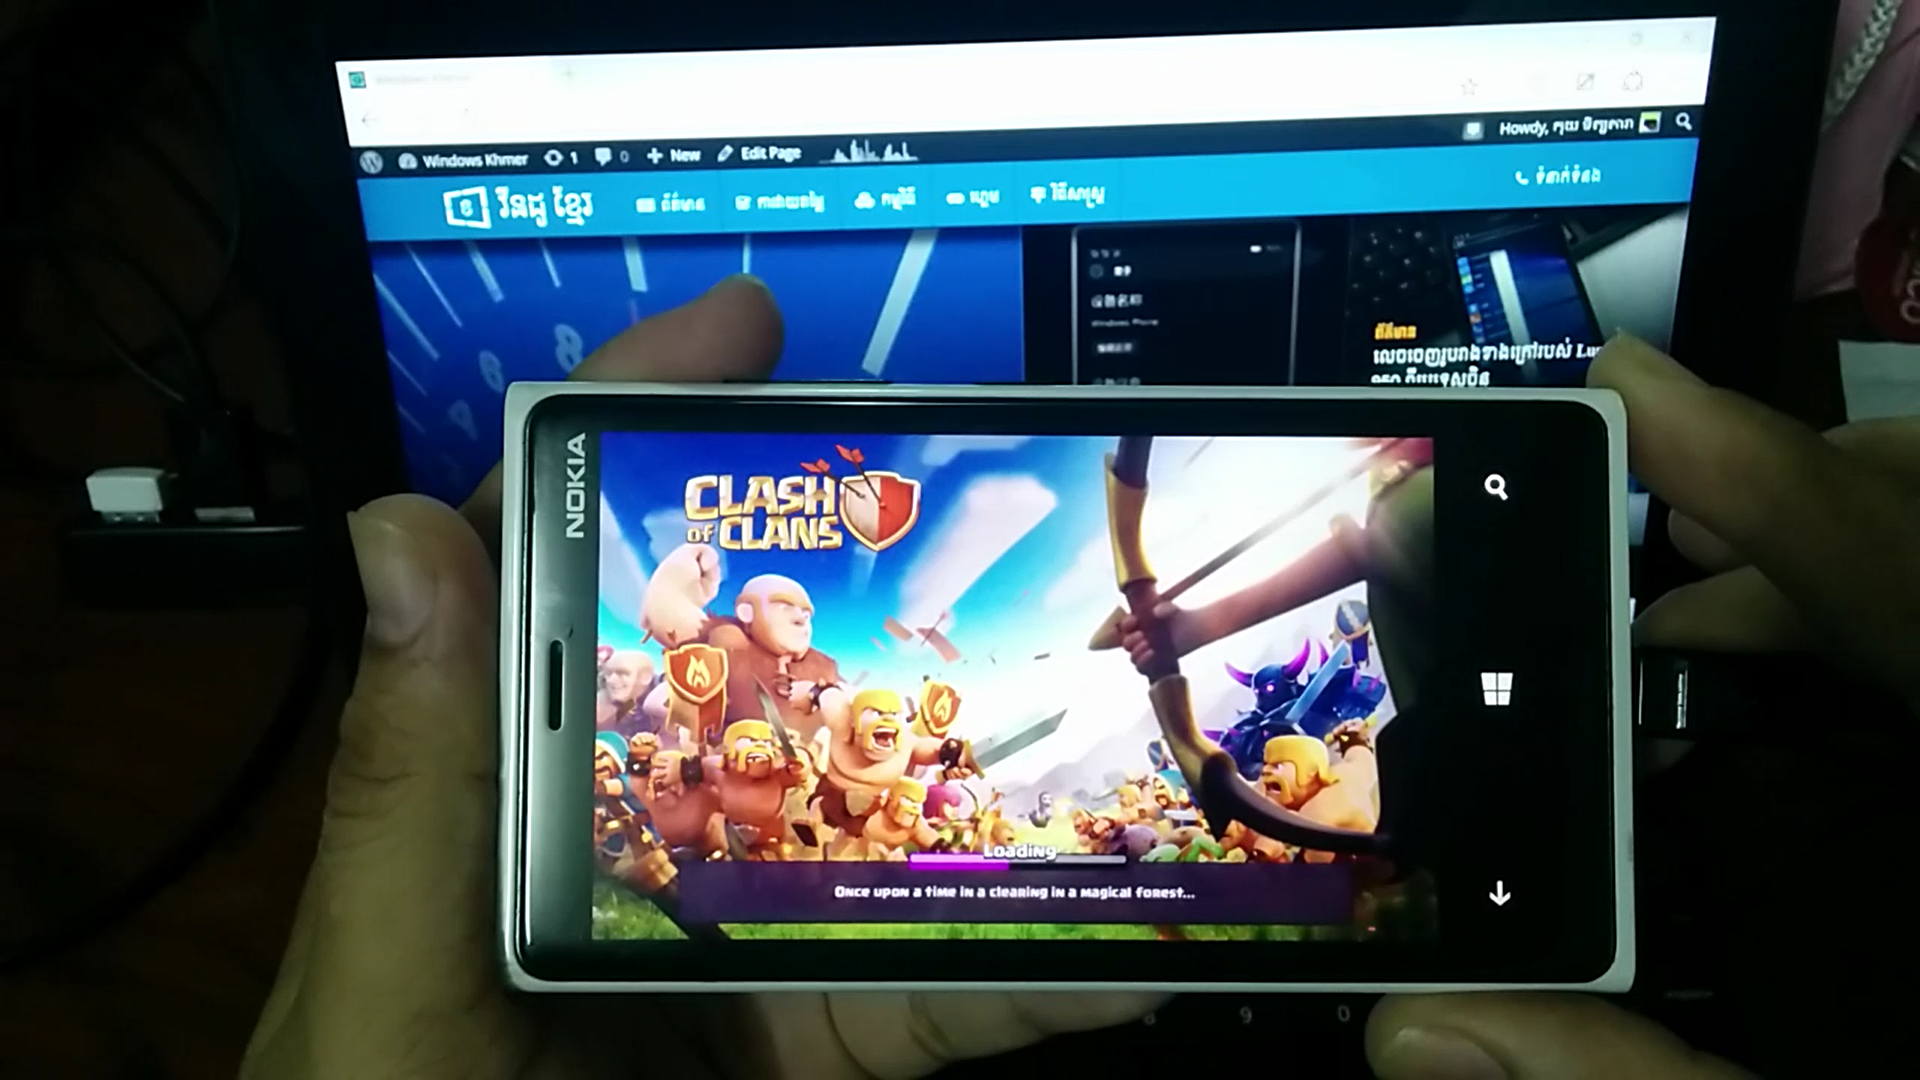 Clash of Clans Running on Windows 10 Mobile